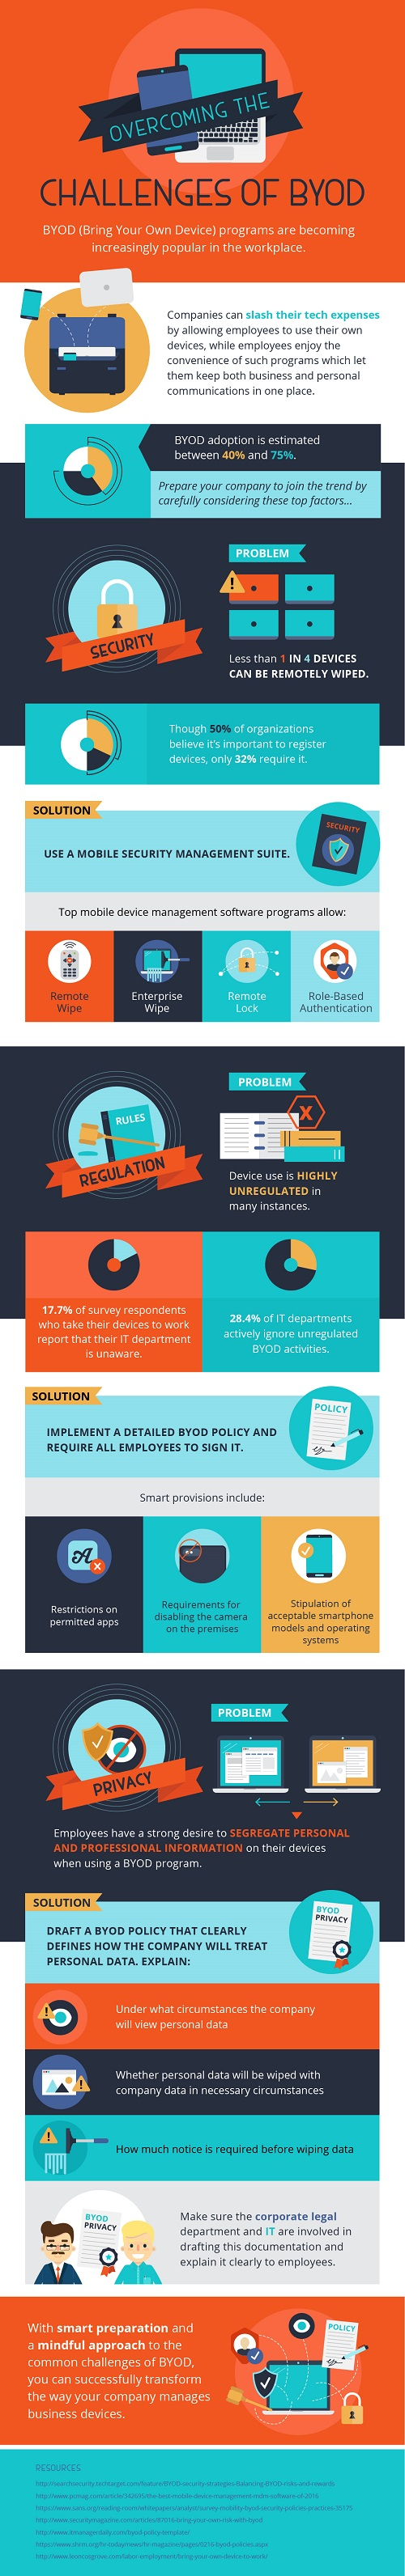 Challenges of BYOD